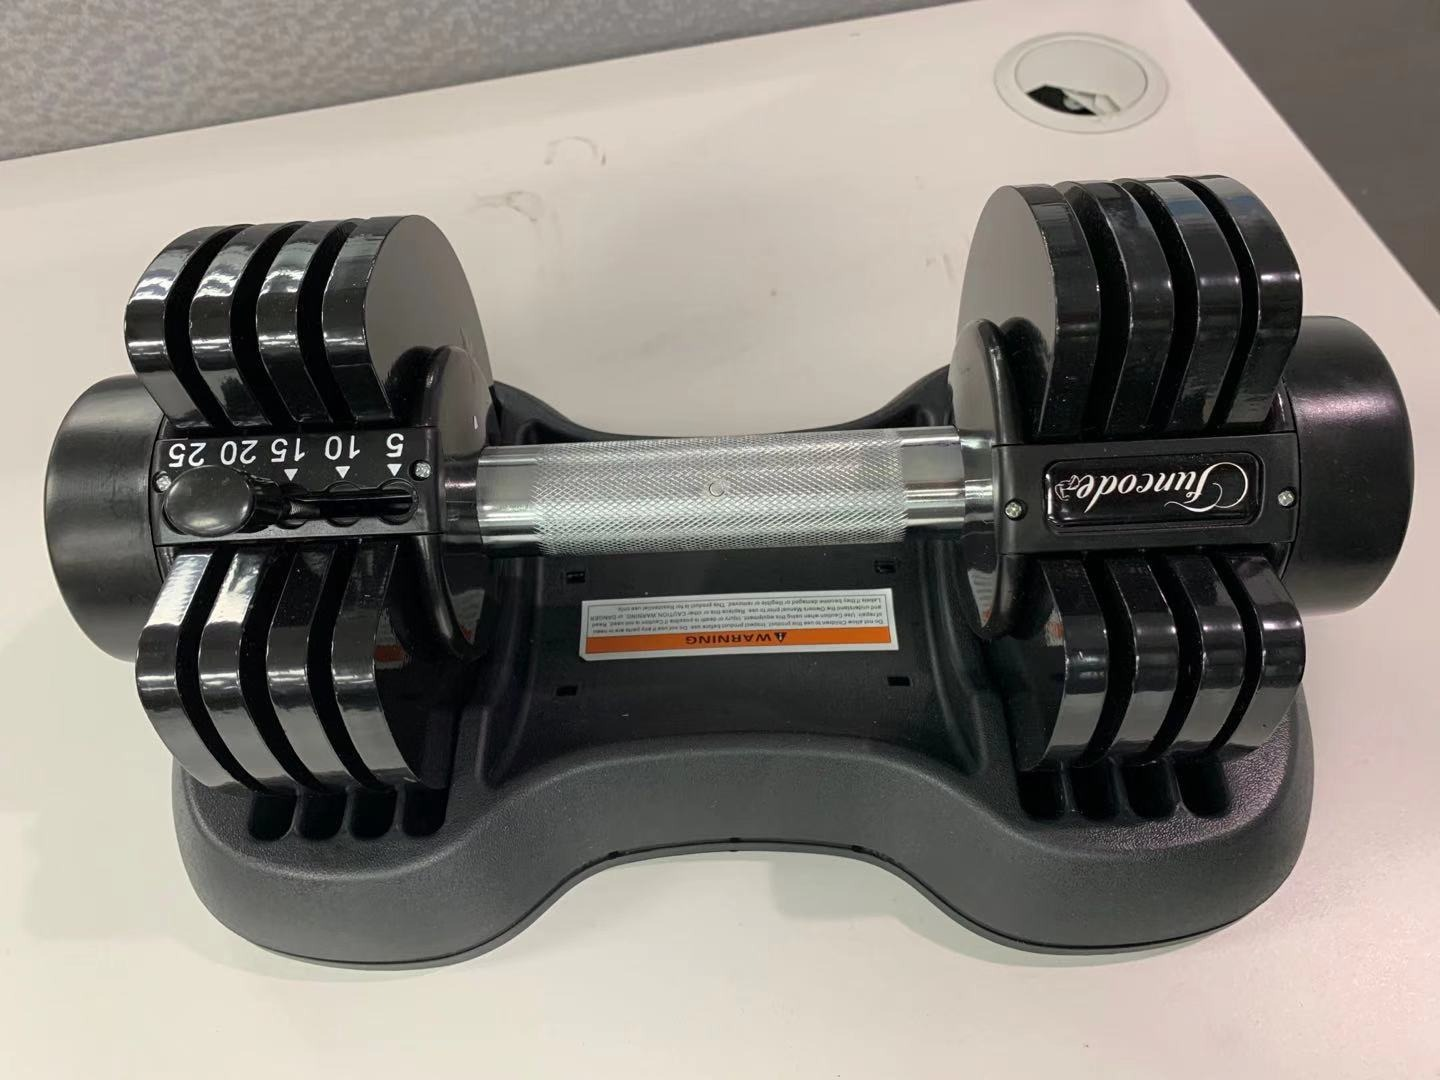 Funcode Adjustable Dumbbells, 5-25Lbs Weight Options, Anti-Slip Handle, All-Purpose, Home, Gym, Office photo review